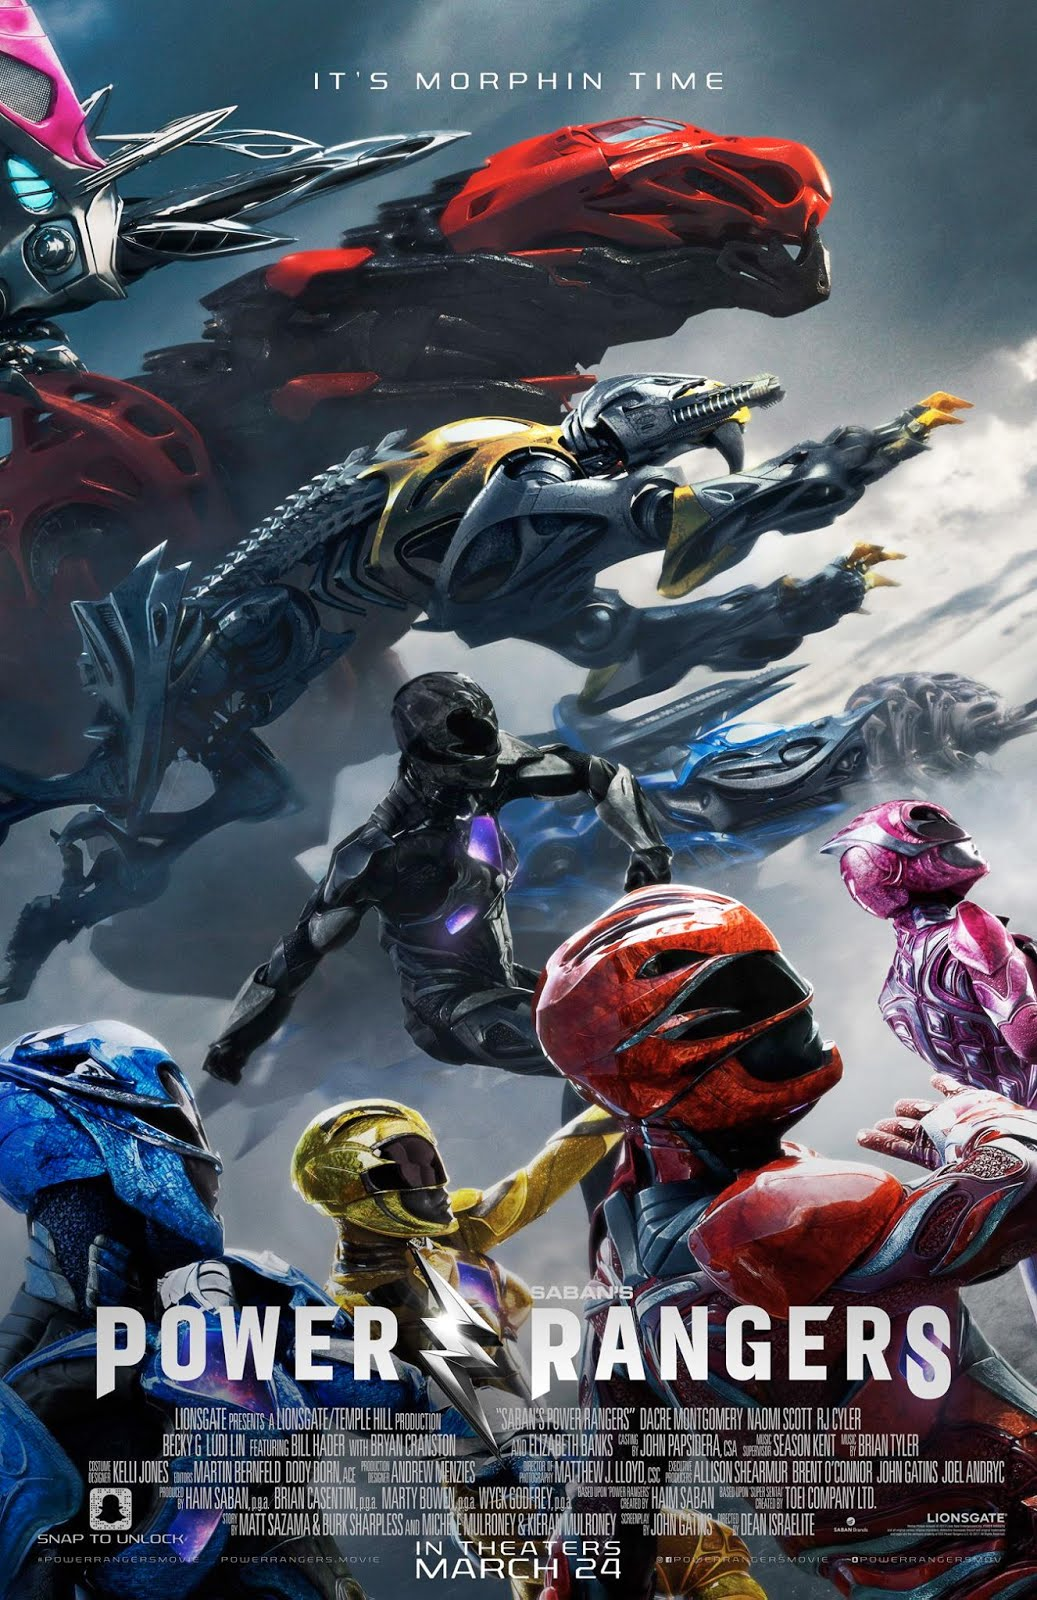 Power Rangers (2017) Movie Download In 300MB – Worldfree4u